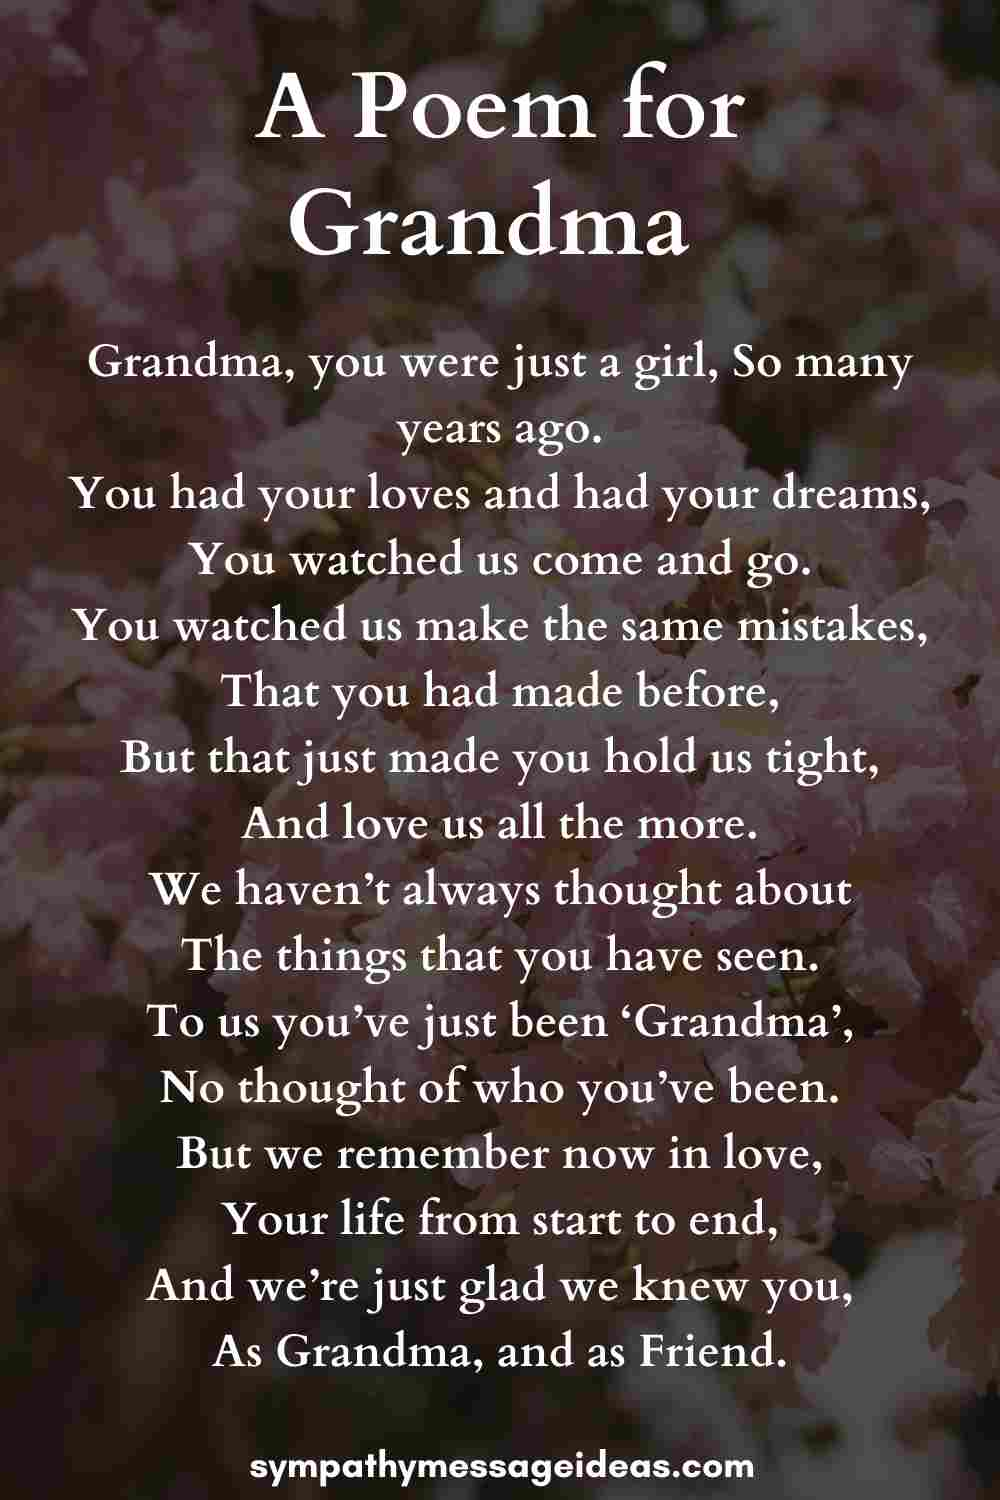 poem for grandmothers funeral